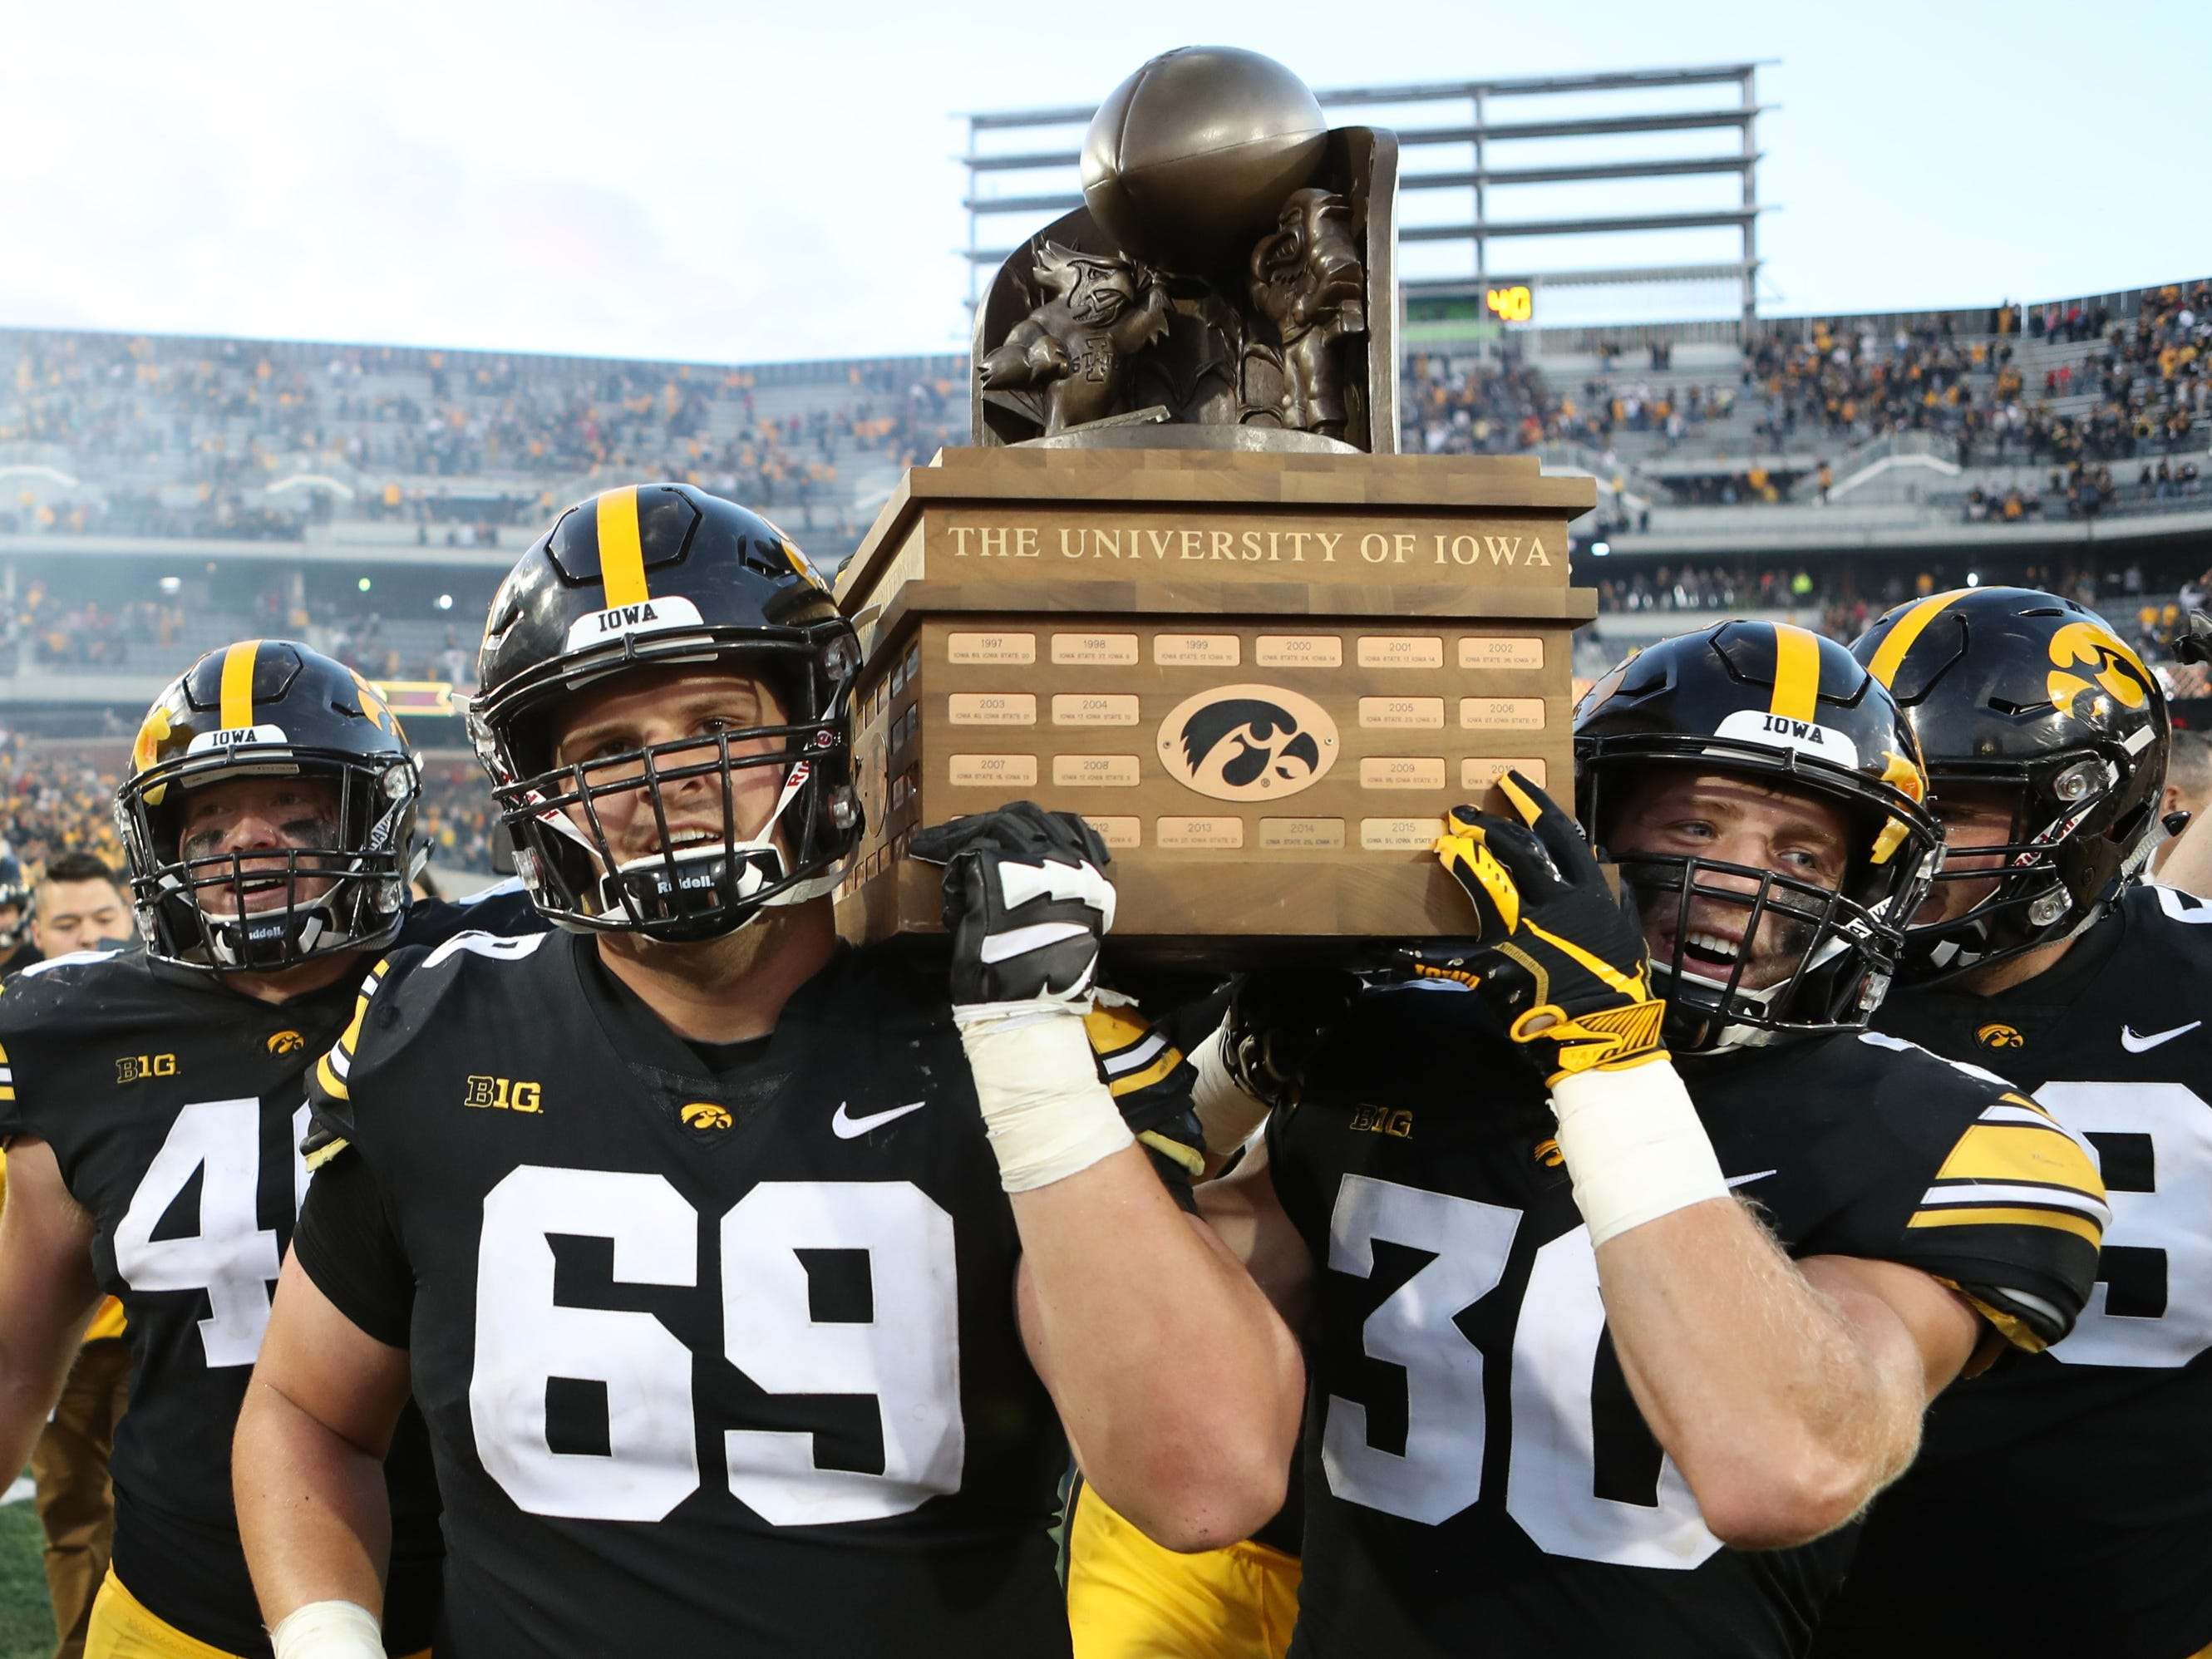 Cy-Hawk Trophy: Iowa Hawkeyes offensive lineman Keegan Render (69) and Idefensive back Jake Gervase (30) carry the Cy-Hawk trophy off the field after defeating Iowa State, 13-3,  at Kinnick Stadium on Sept. 8.